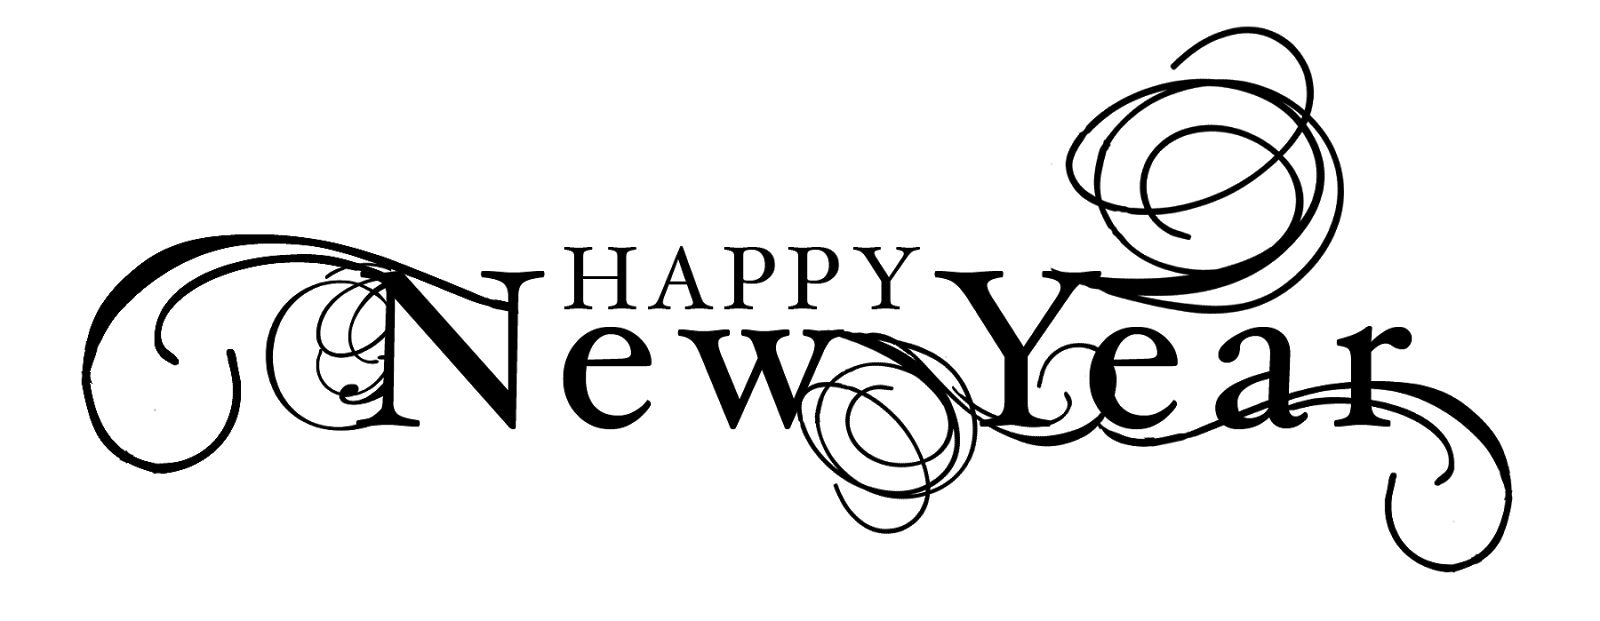 svg library stock Text png clip art. Clipart happy new year 2017